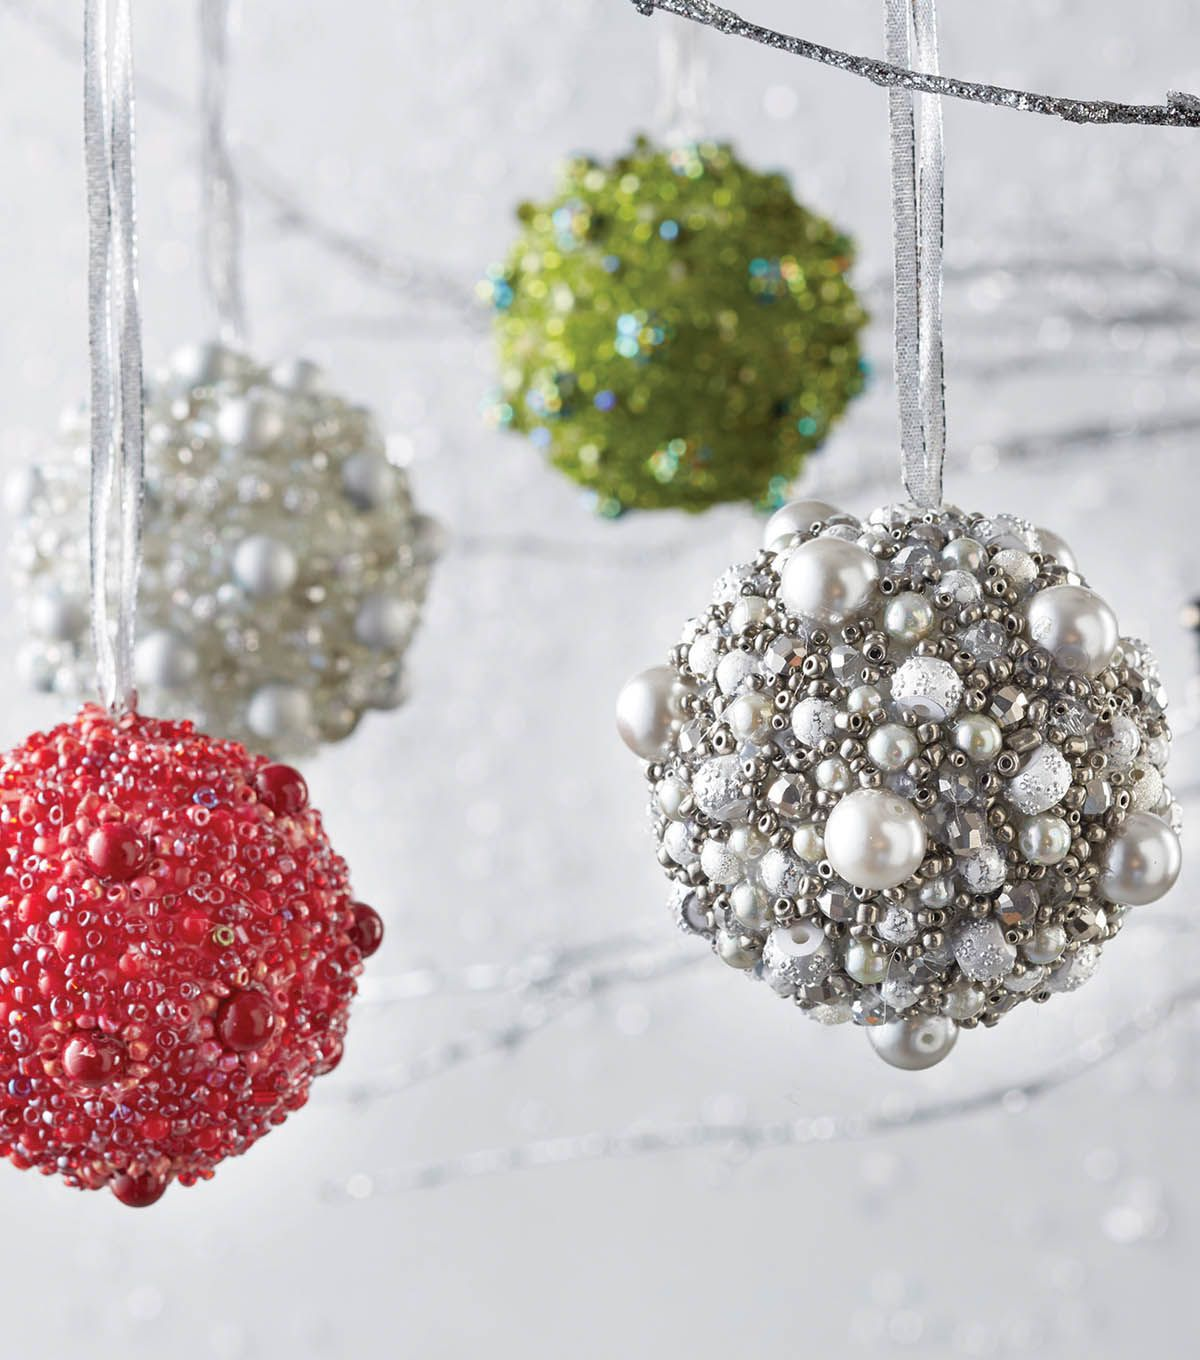 how to make beaded holiday balls - Joann Fabrics Christmas Decorations